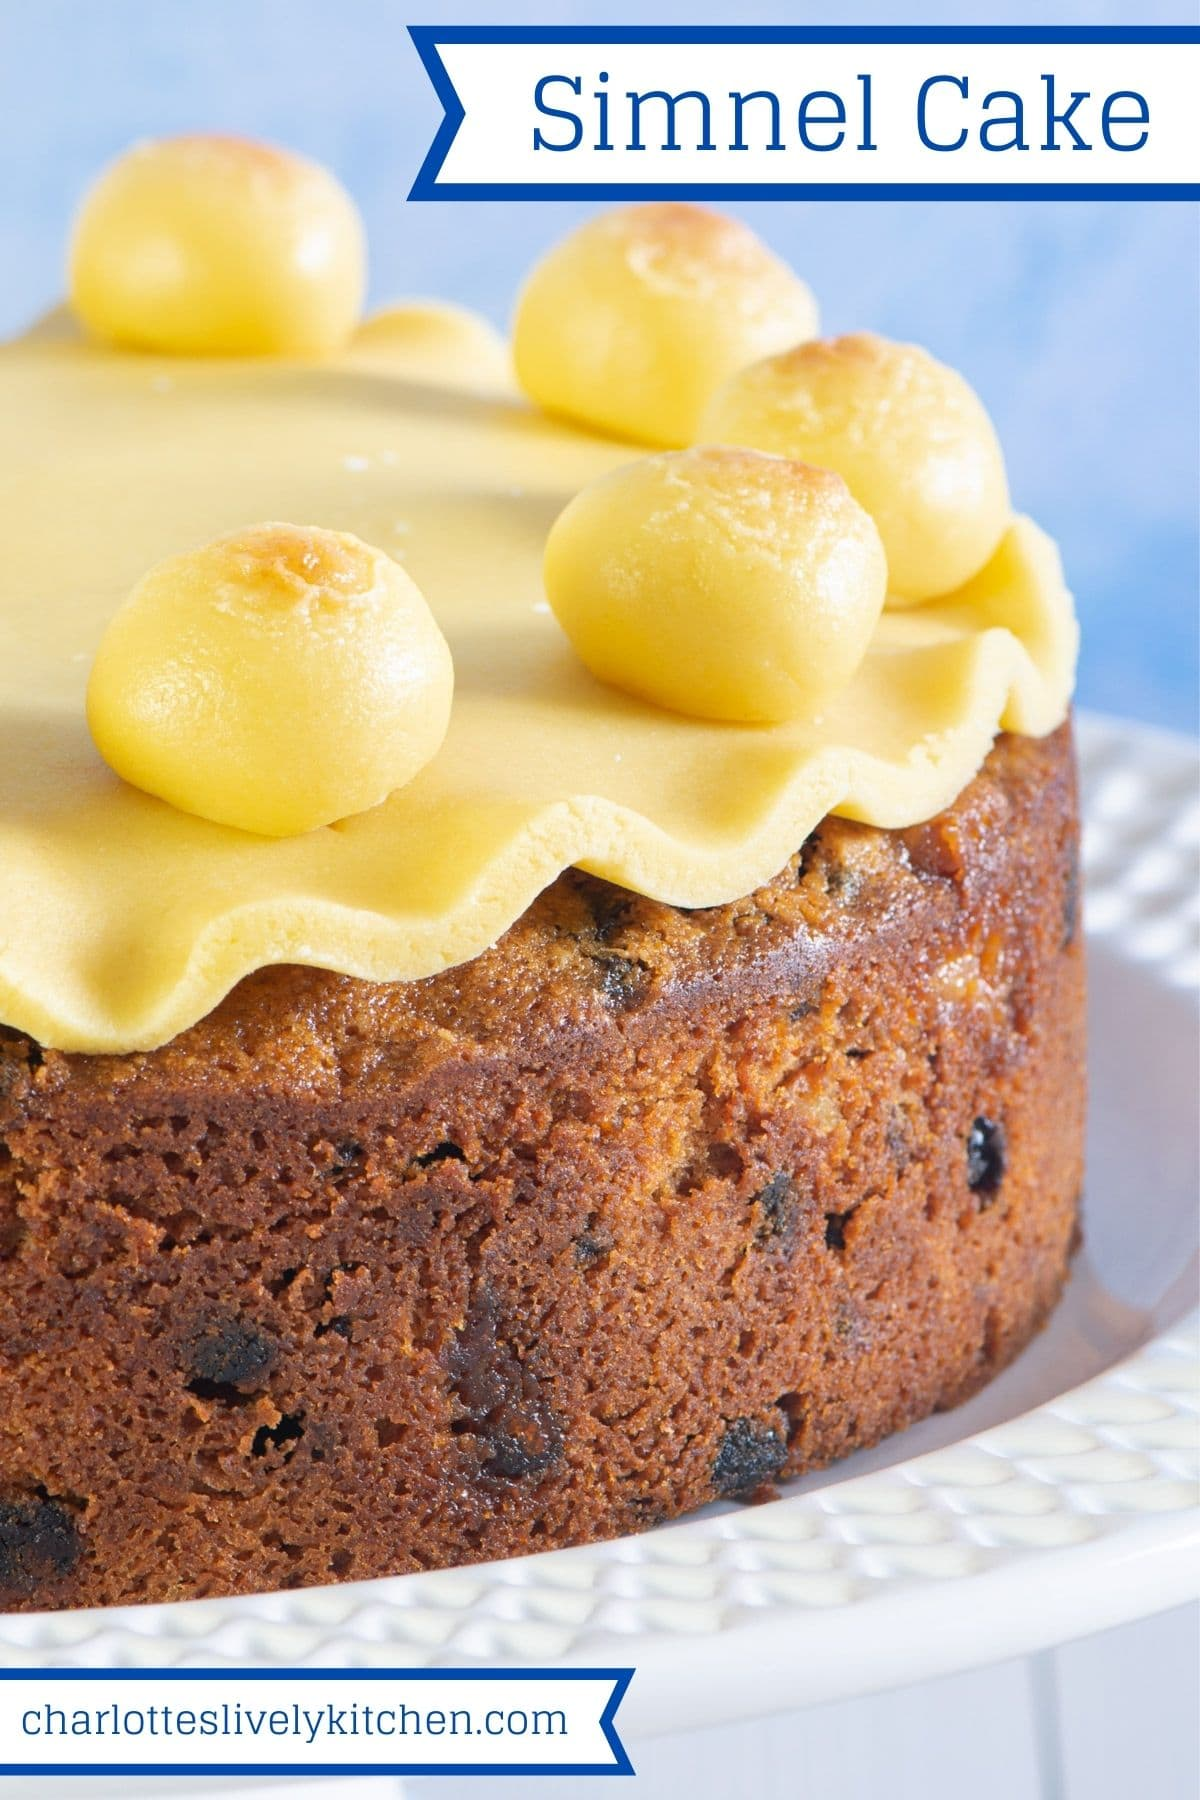 Close up of simnel cake with marzipan decorations with text overlay: Simnel Cake.